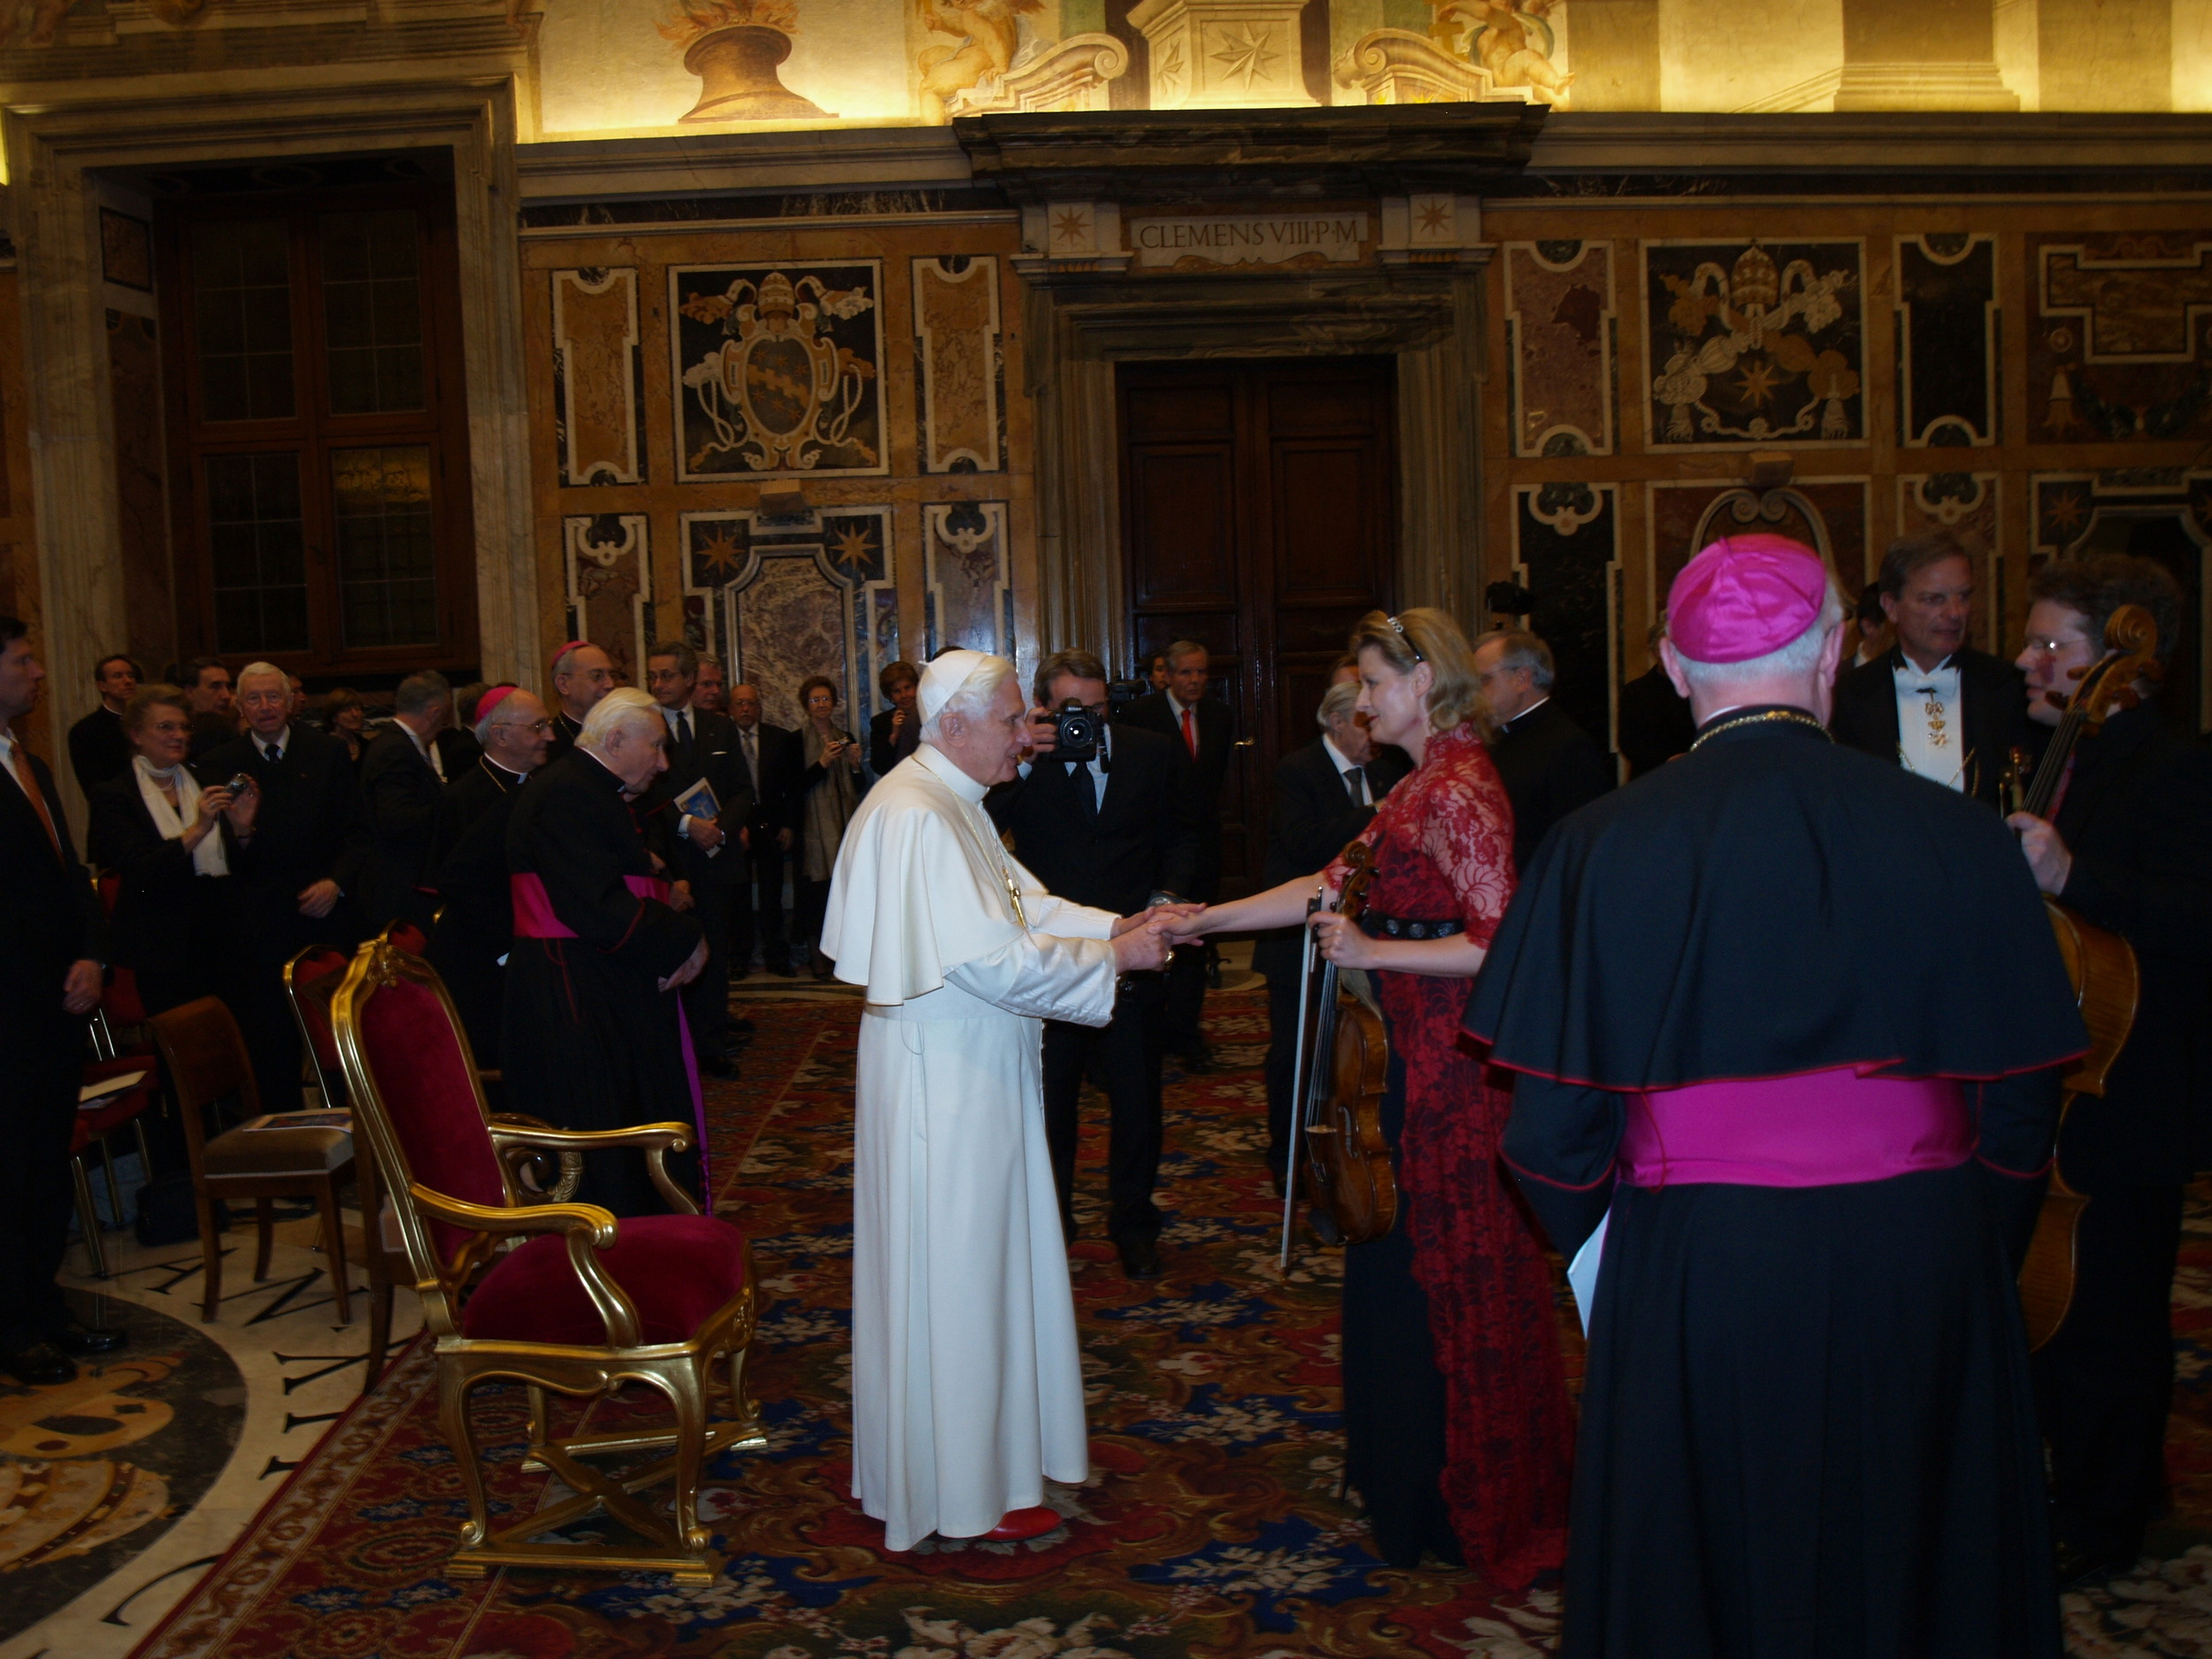 Concert for Pope Benedict XVI in the Vatican at Sala Clementina in honour of his nameday